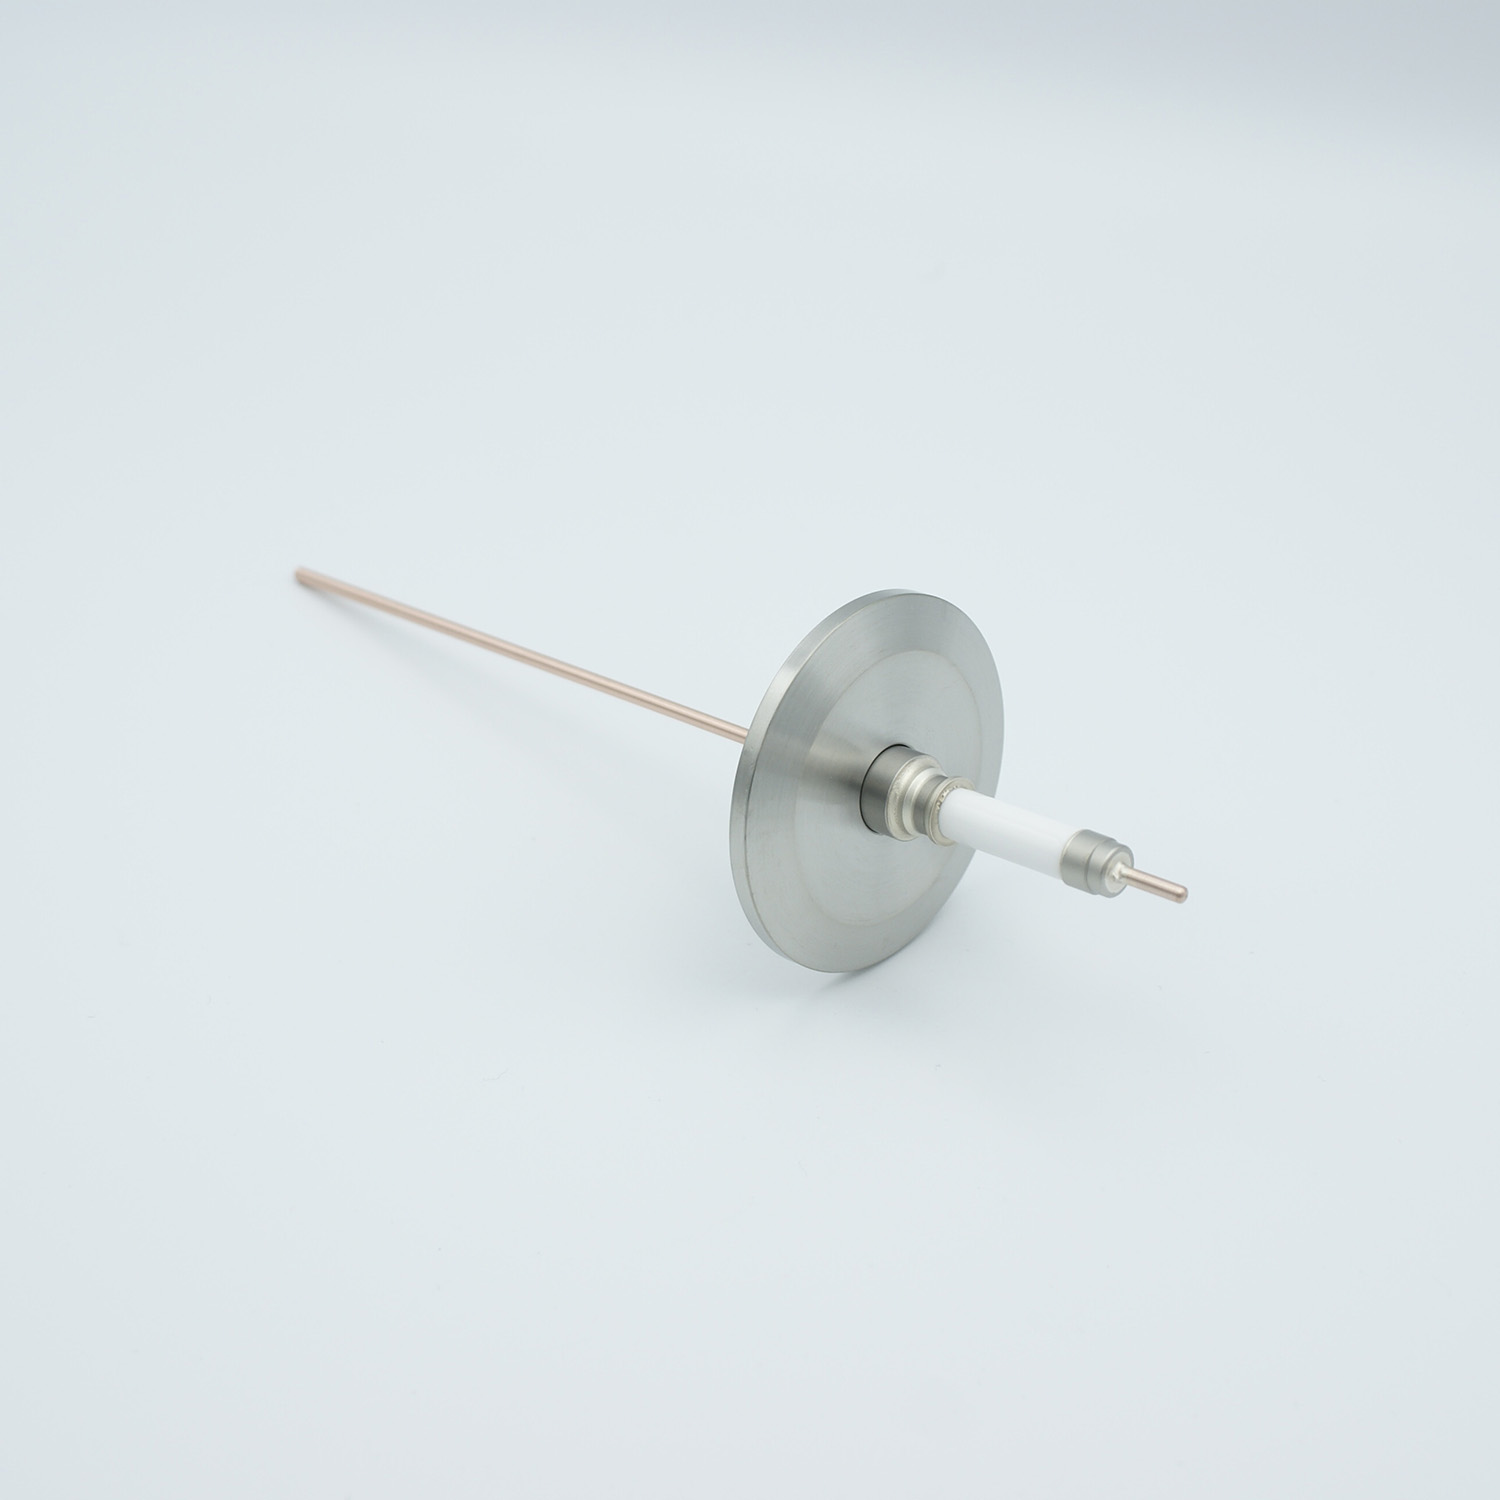 1 pin high voltage feedthrough with power glove connector 20000V / 30 Amp. Copper conductor, DN40KF flange